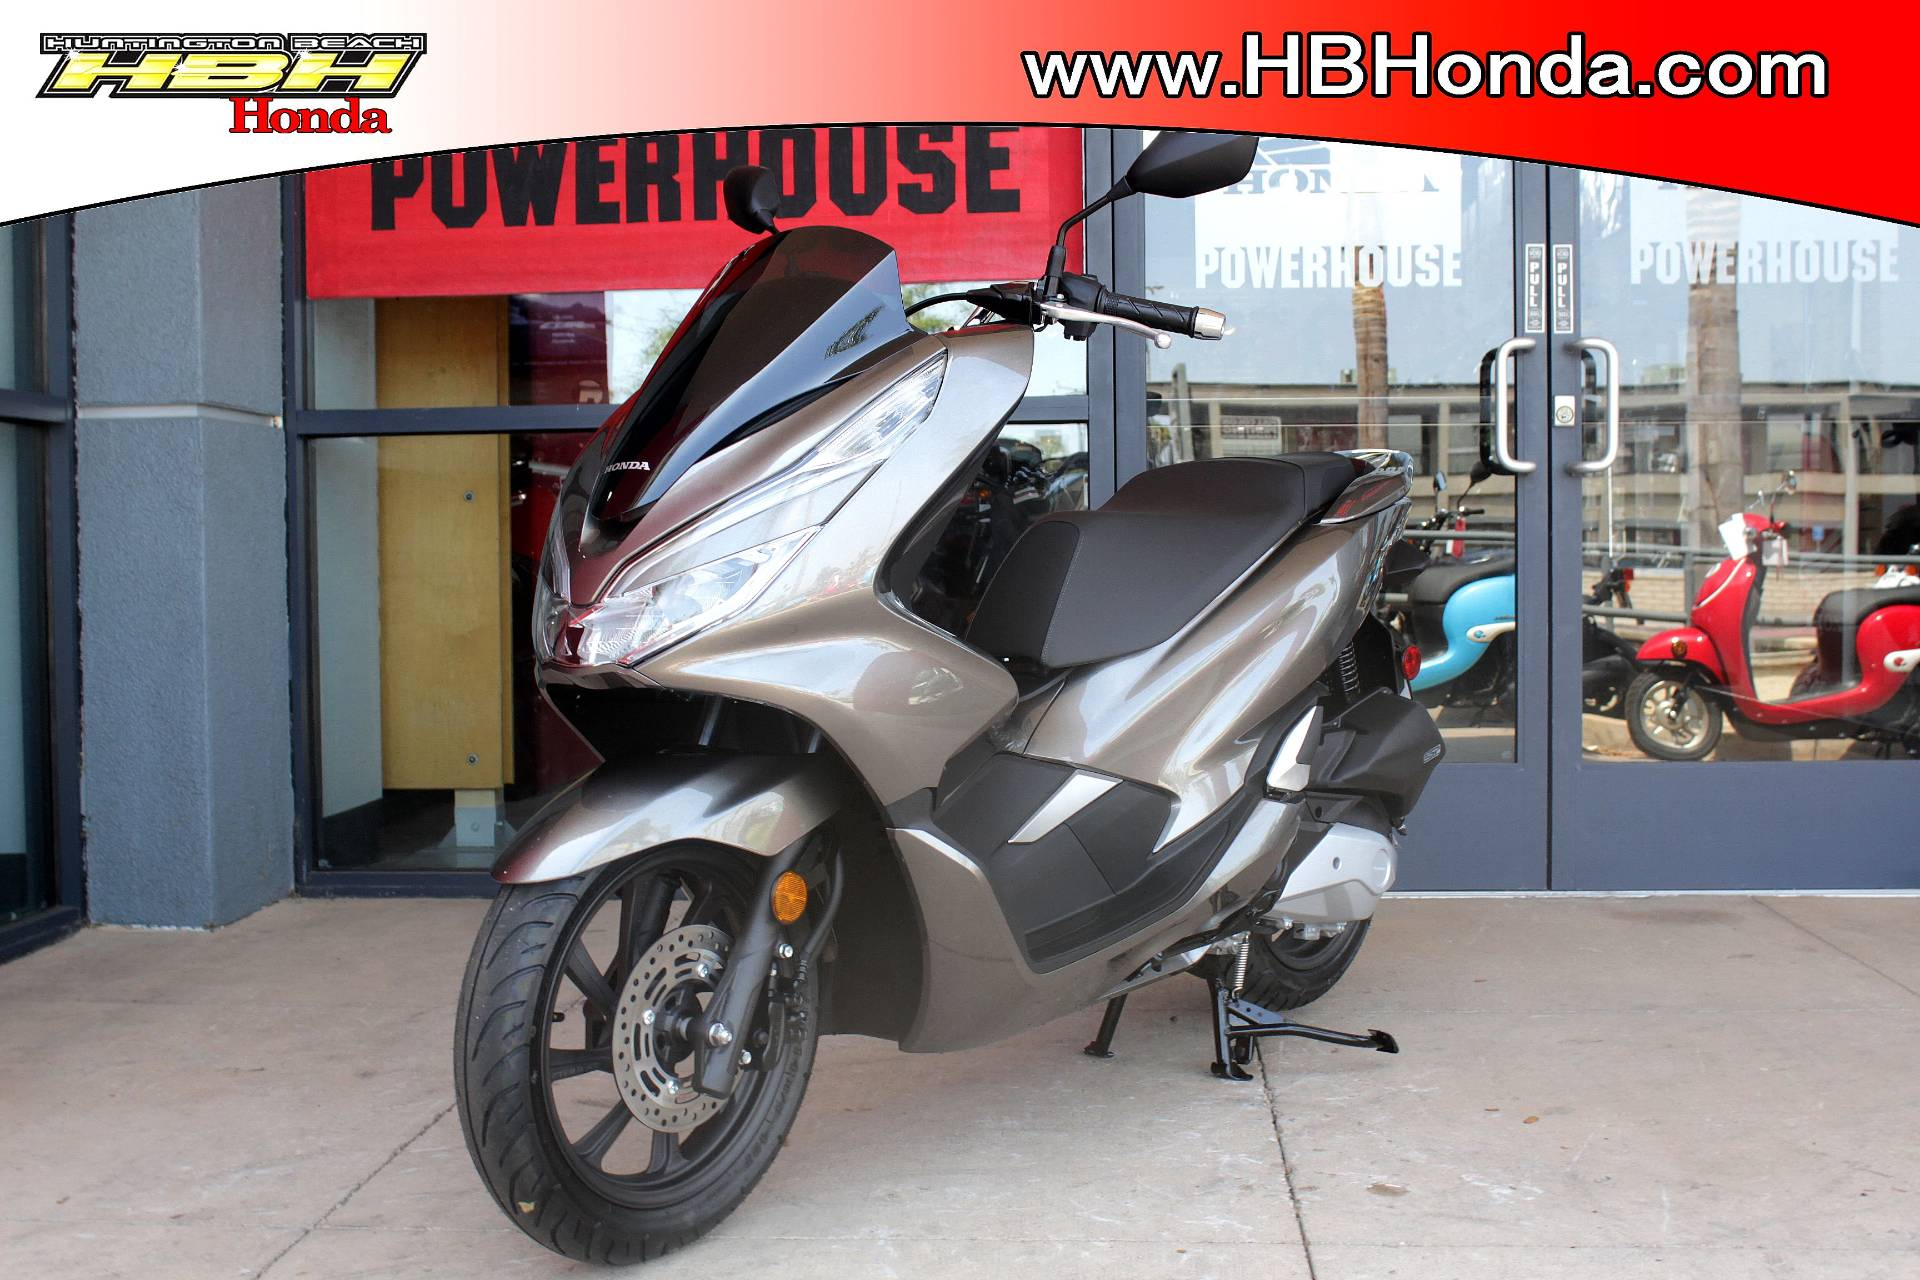 2019 Honda PCX150 ABS in Huntington Beach, California